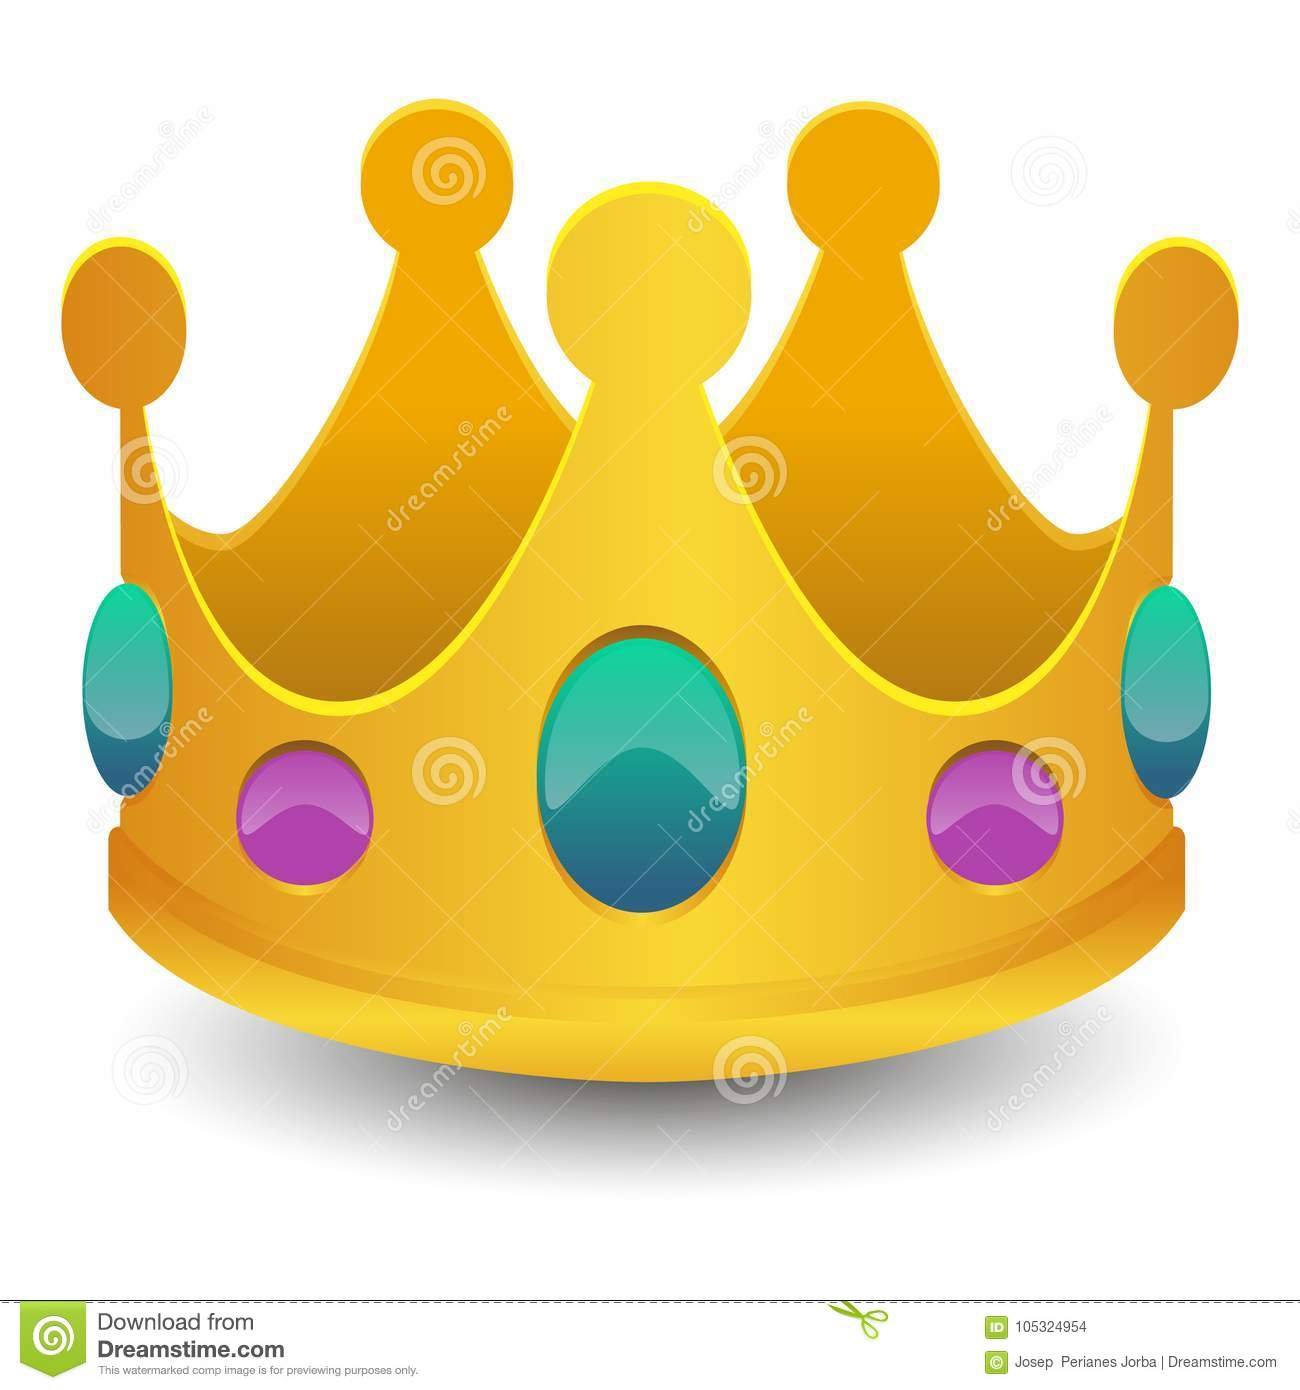 King crown emoji vector art 3d effect chat icon symbol stock king crown emoji vector art 3d effect chat icon symbol biocorpaavc Gallery